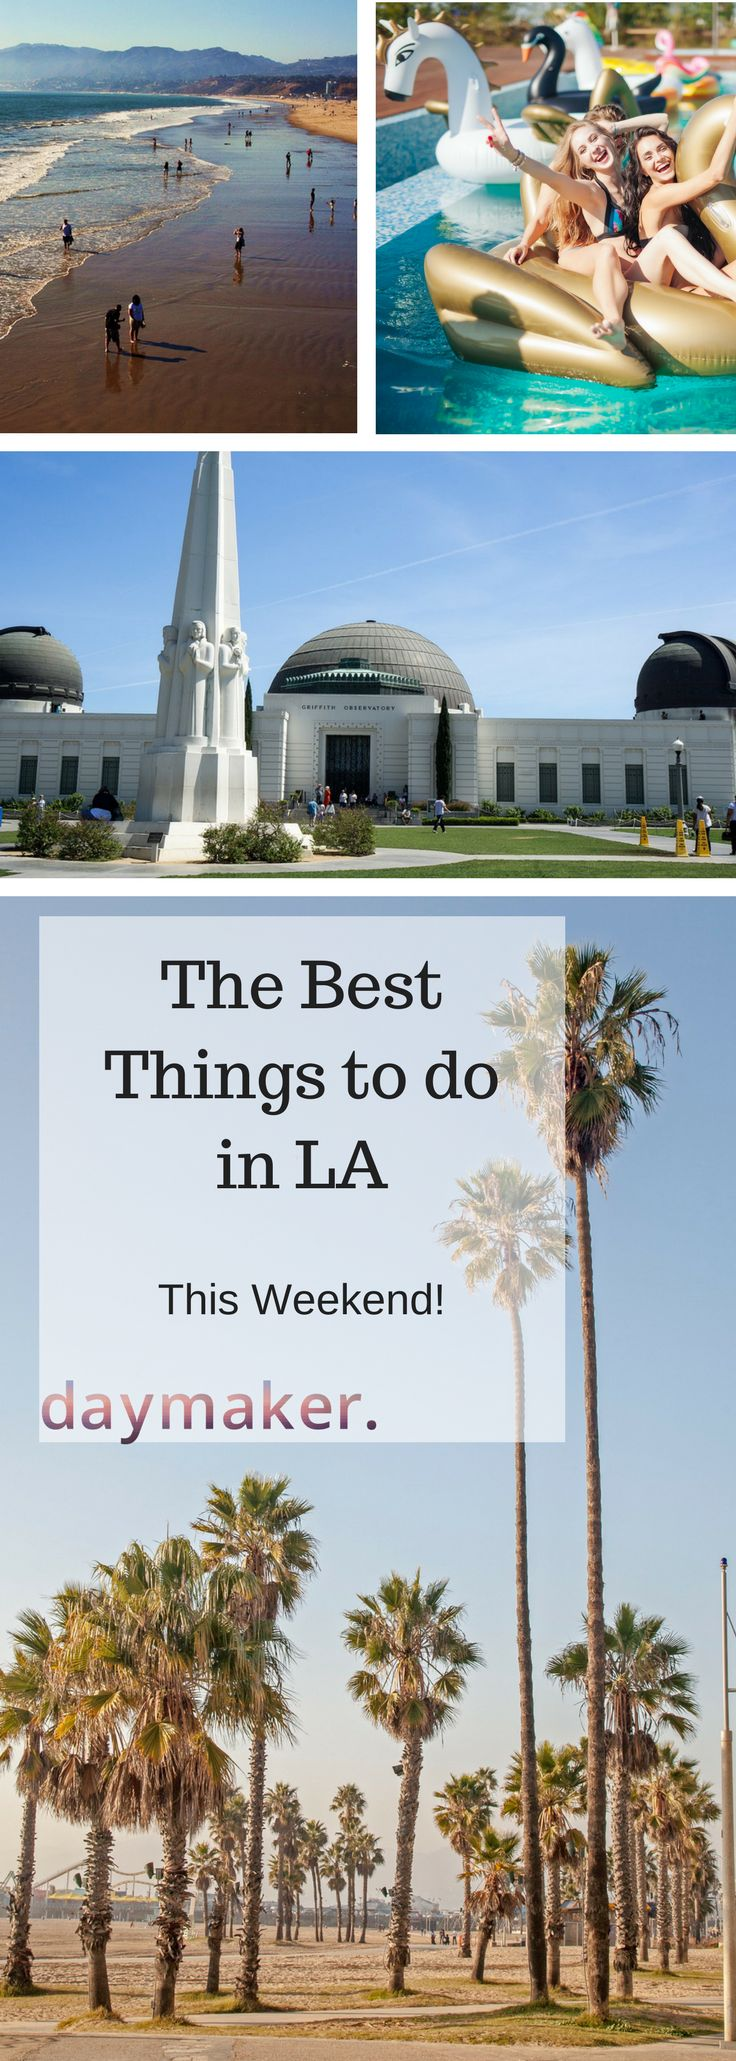 Things to do in LA this weekend | Events this weekend in LA | Planning days in LA | What to do in LA this weekend